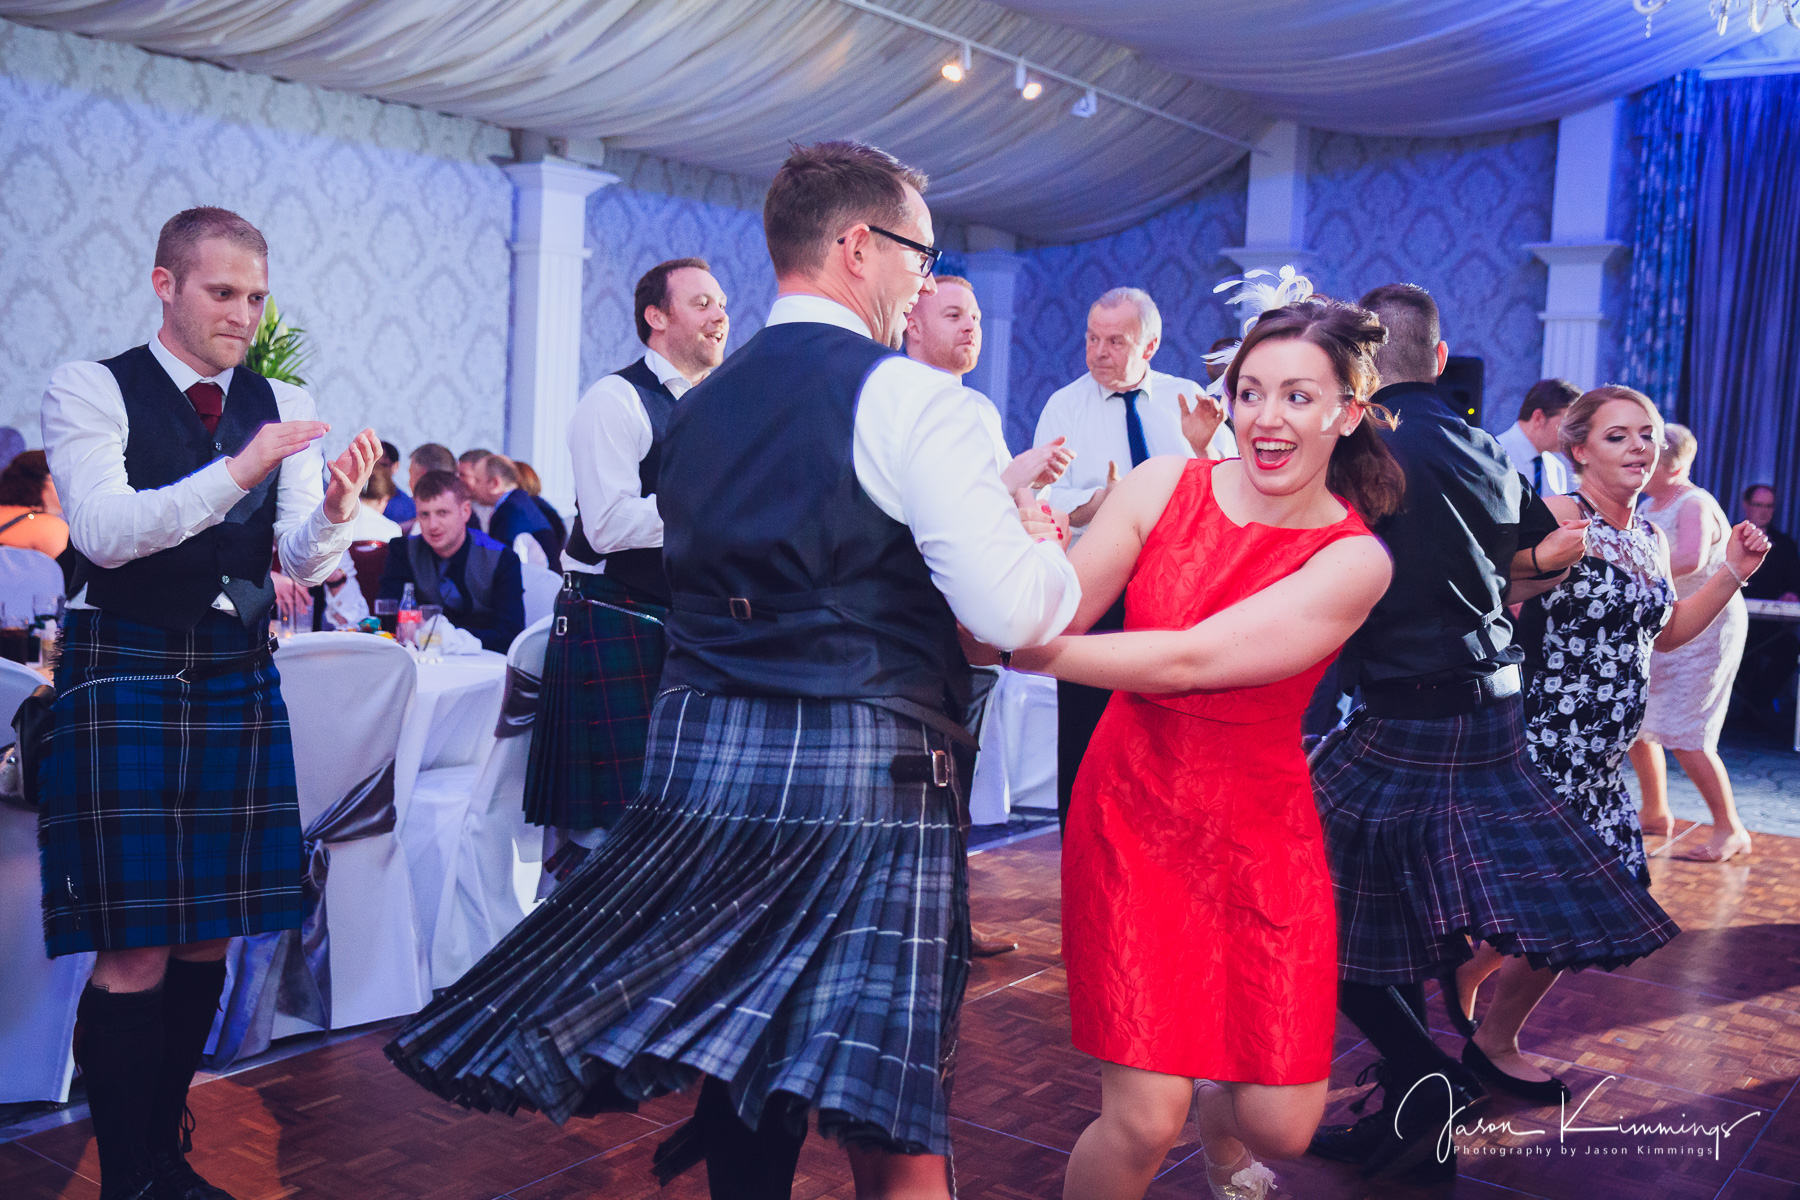 keavil-house-wedding-photography-51.jpg